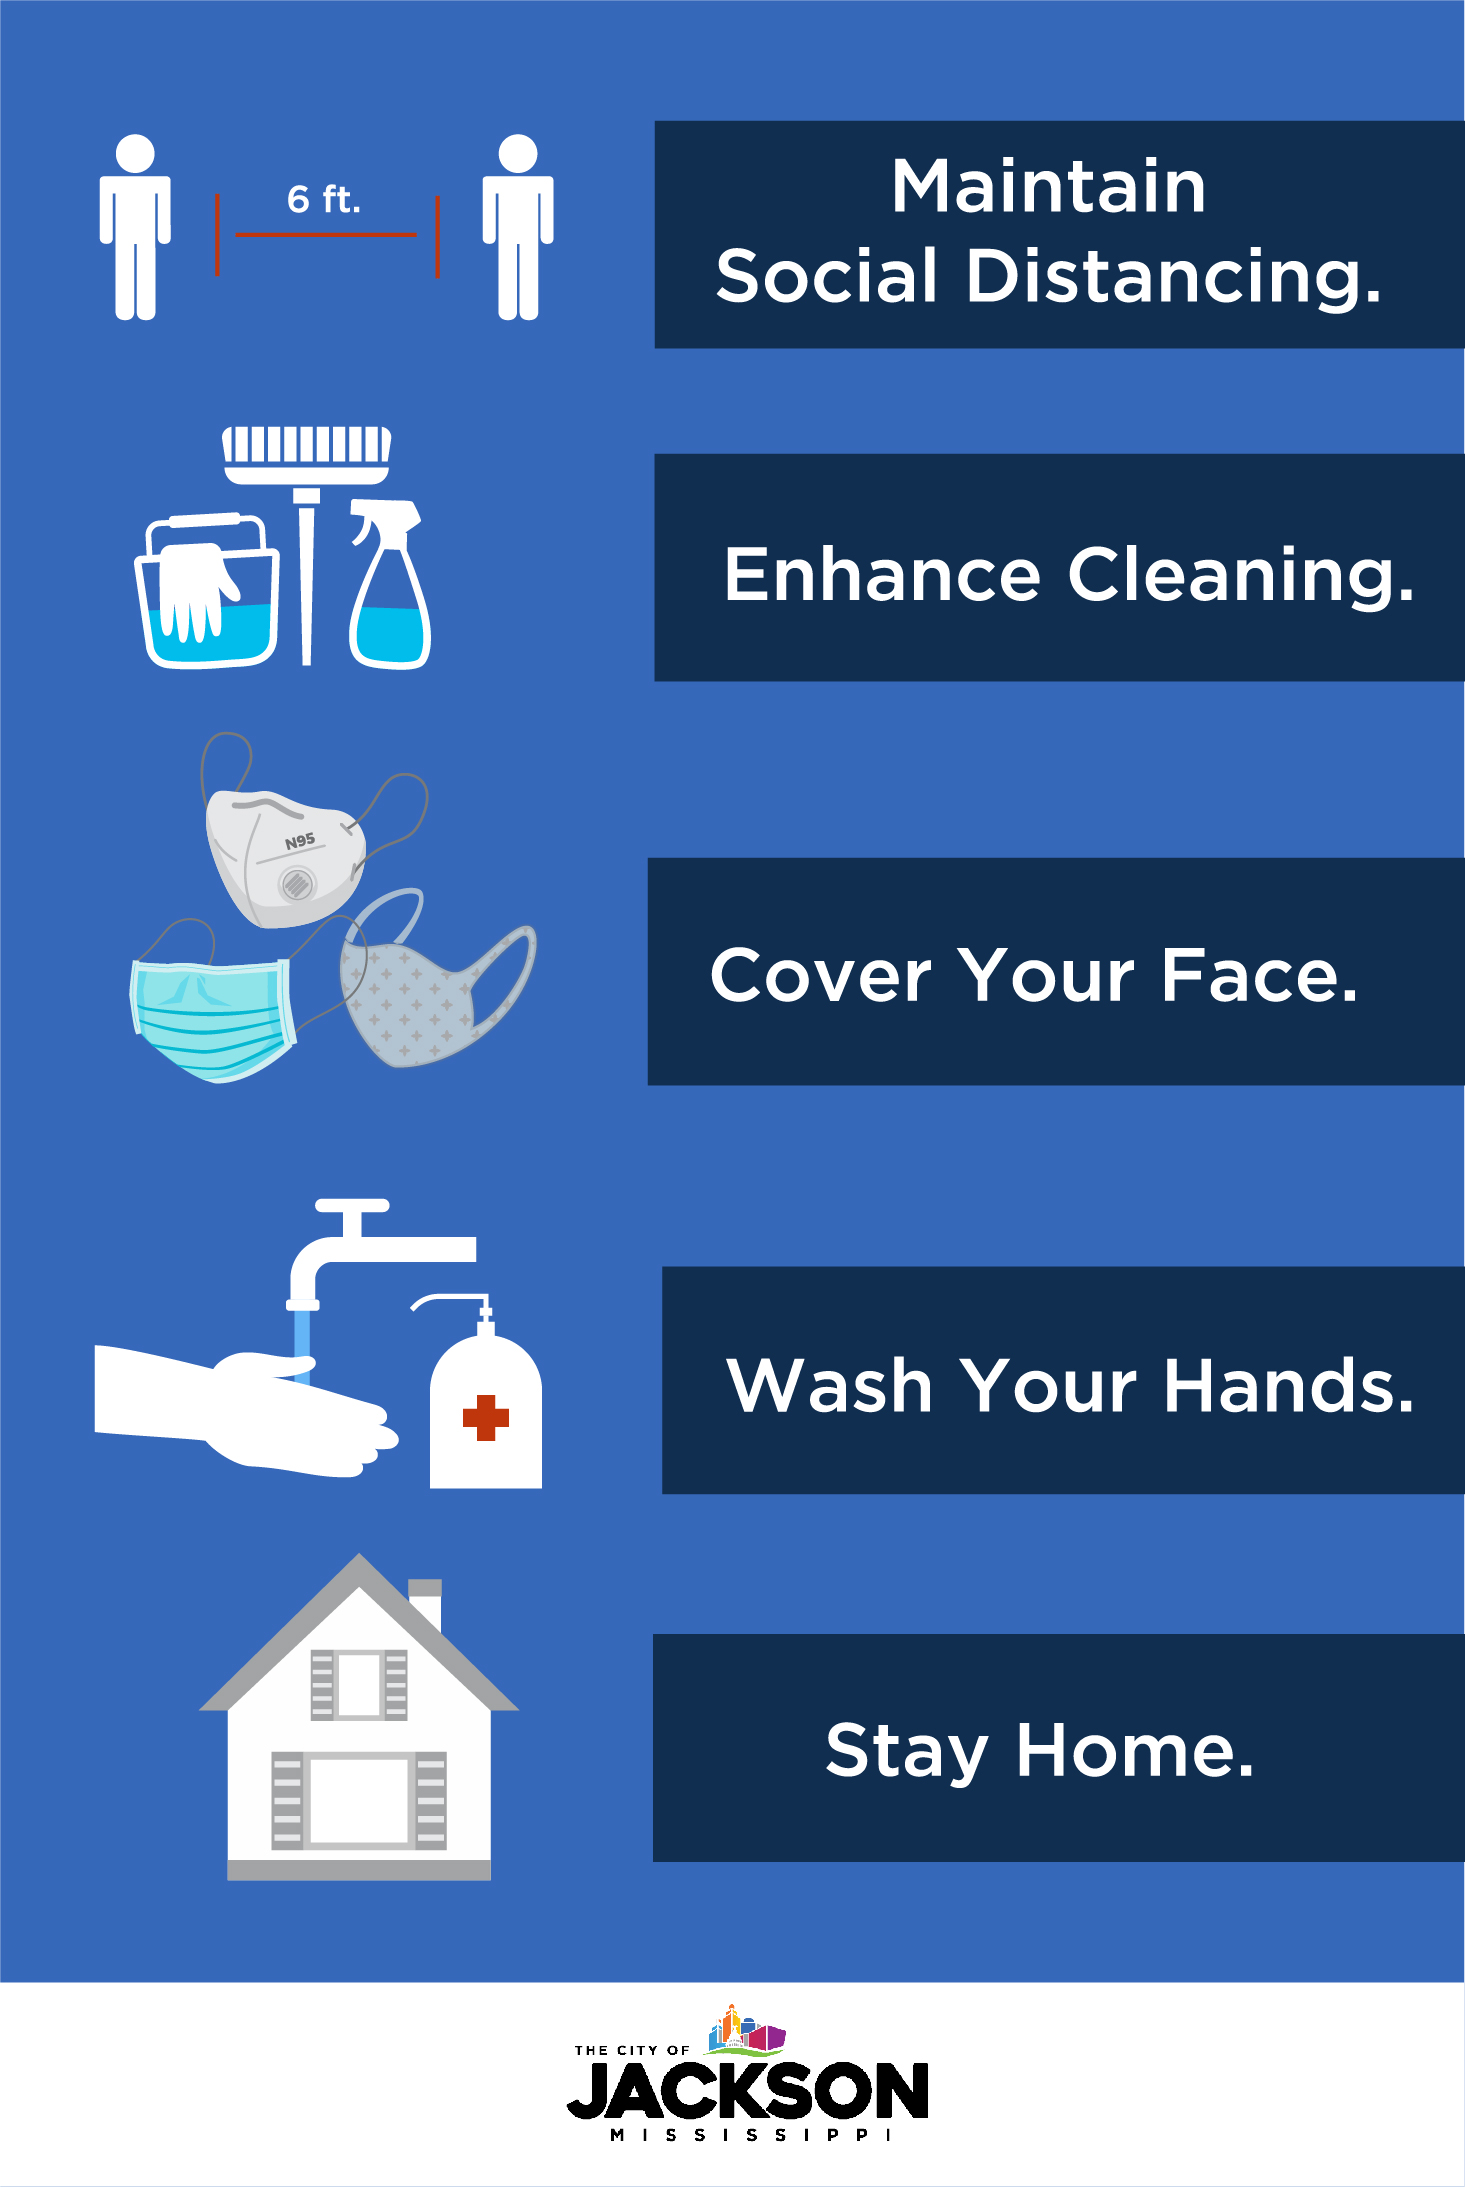 Social Distance, Enhance Cleaning, Cover Face, Wash Hands, Stay Home